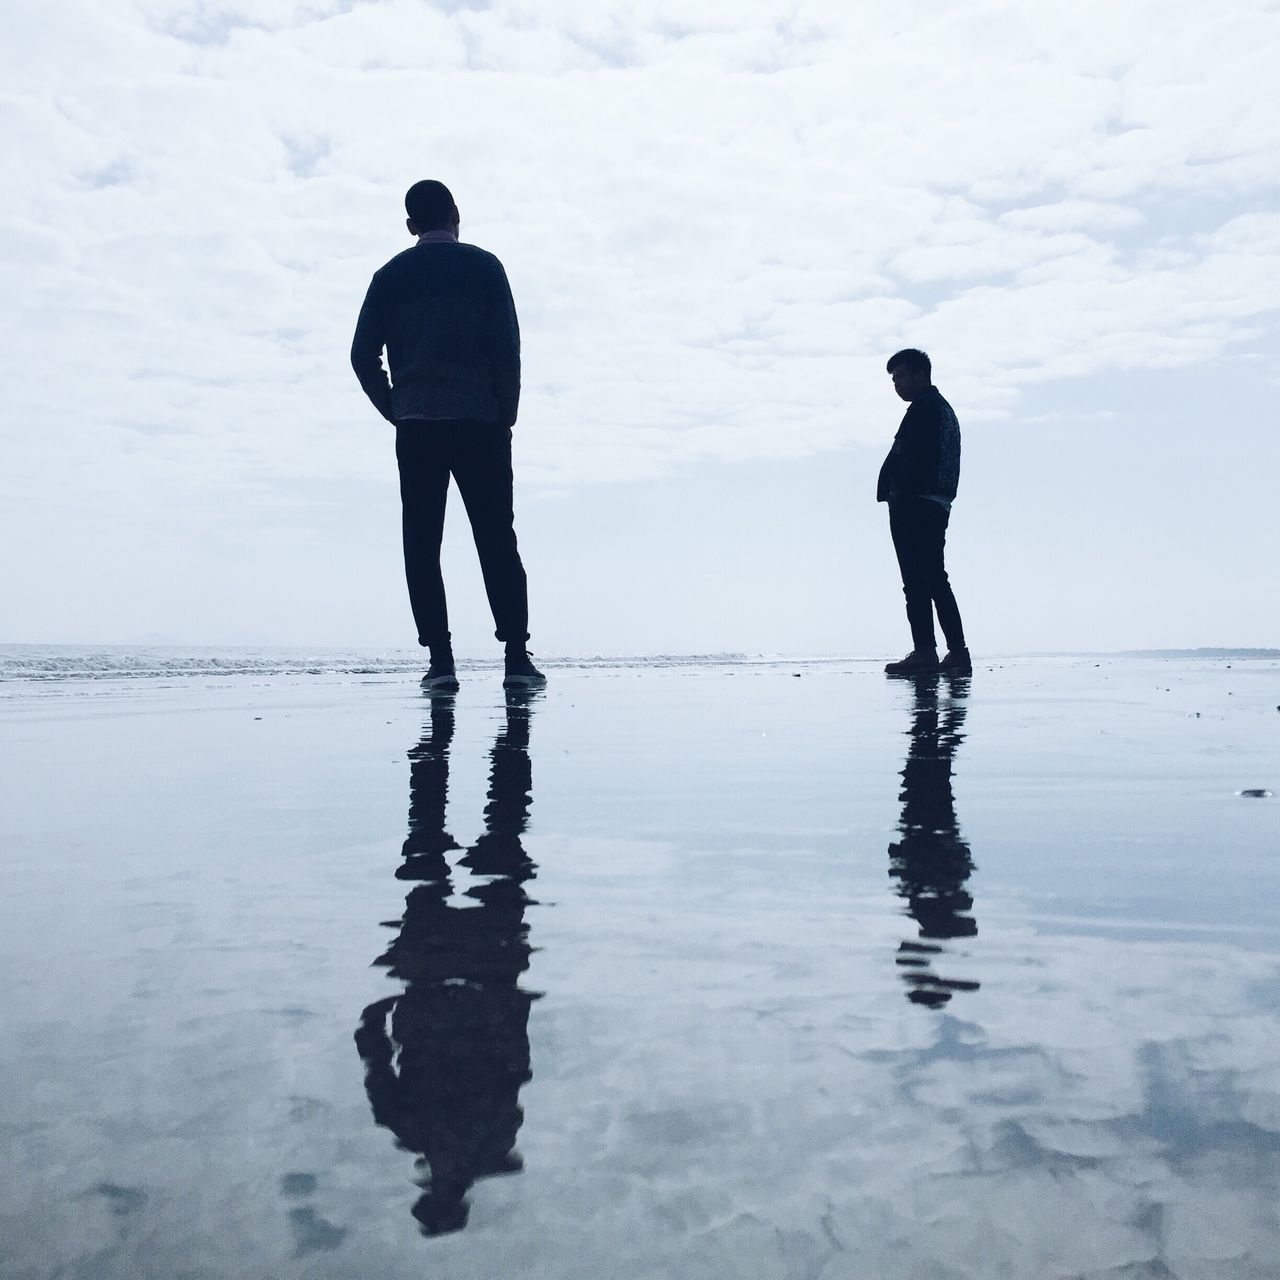 sea, water, silhouette, walking, two people, real people, nature, reflection, beach, leisure activity, rear view, men, beauty in nature, full length, lifestyles, outdoors, standing, vacations, waterfront, scenics, horizon over water, sky, day, ankle deep in water, people